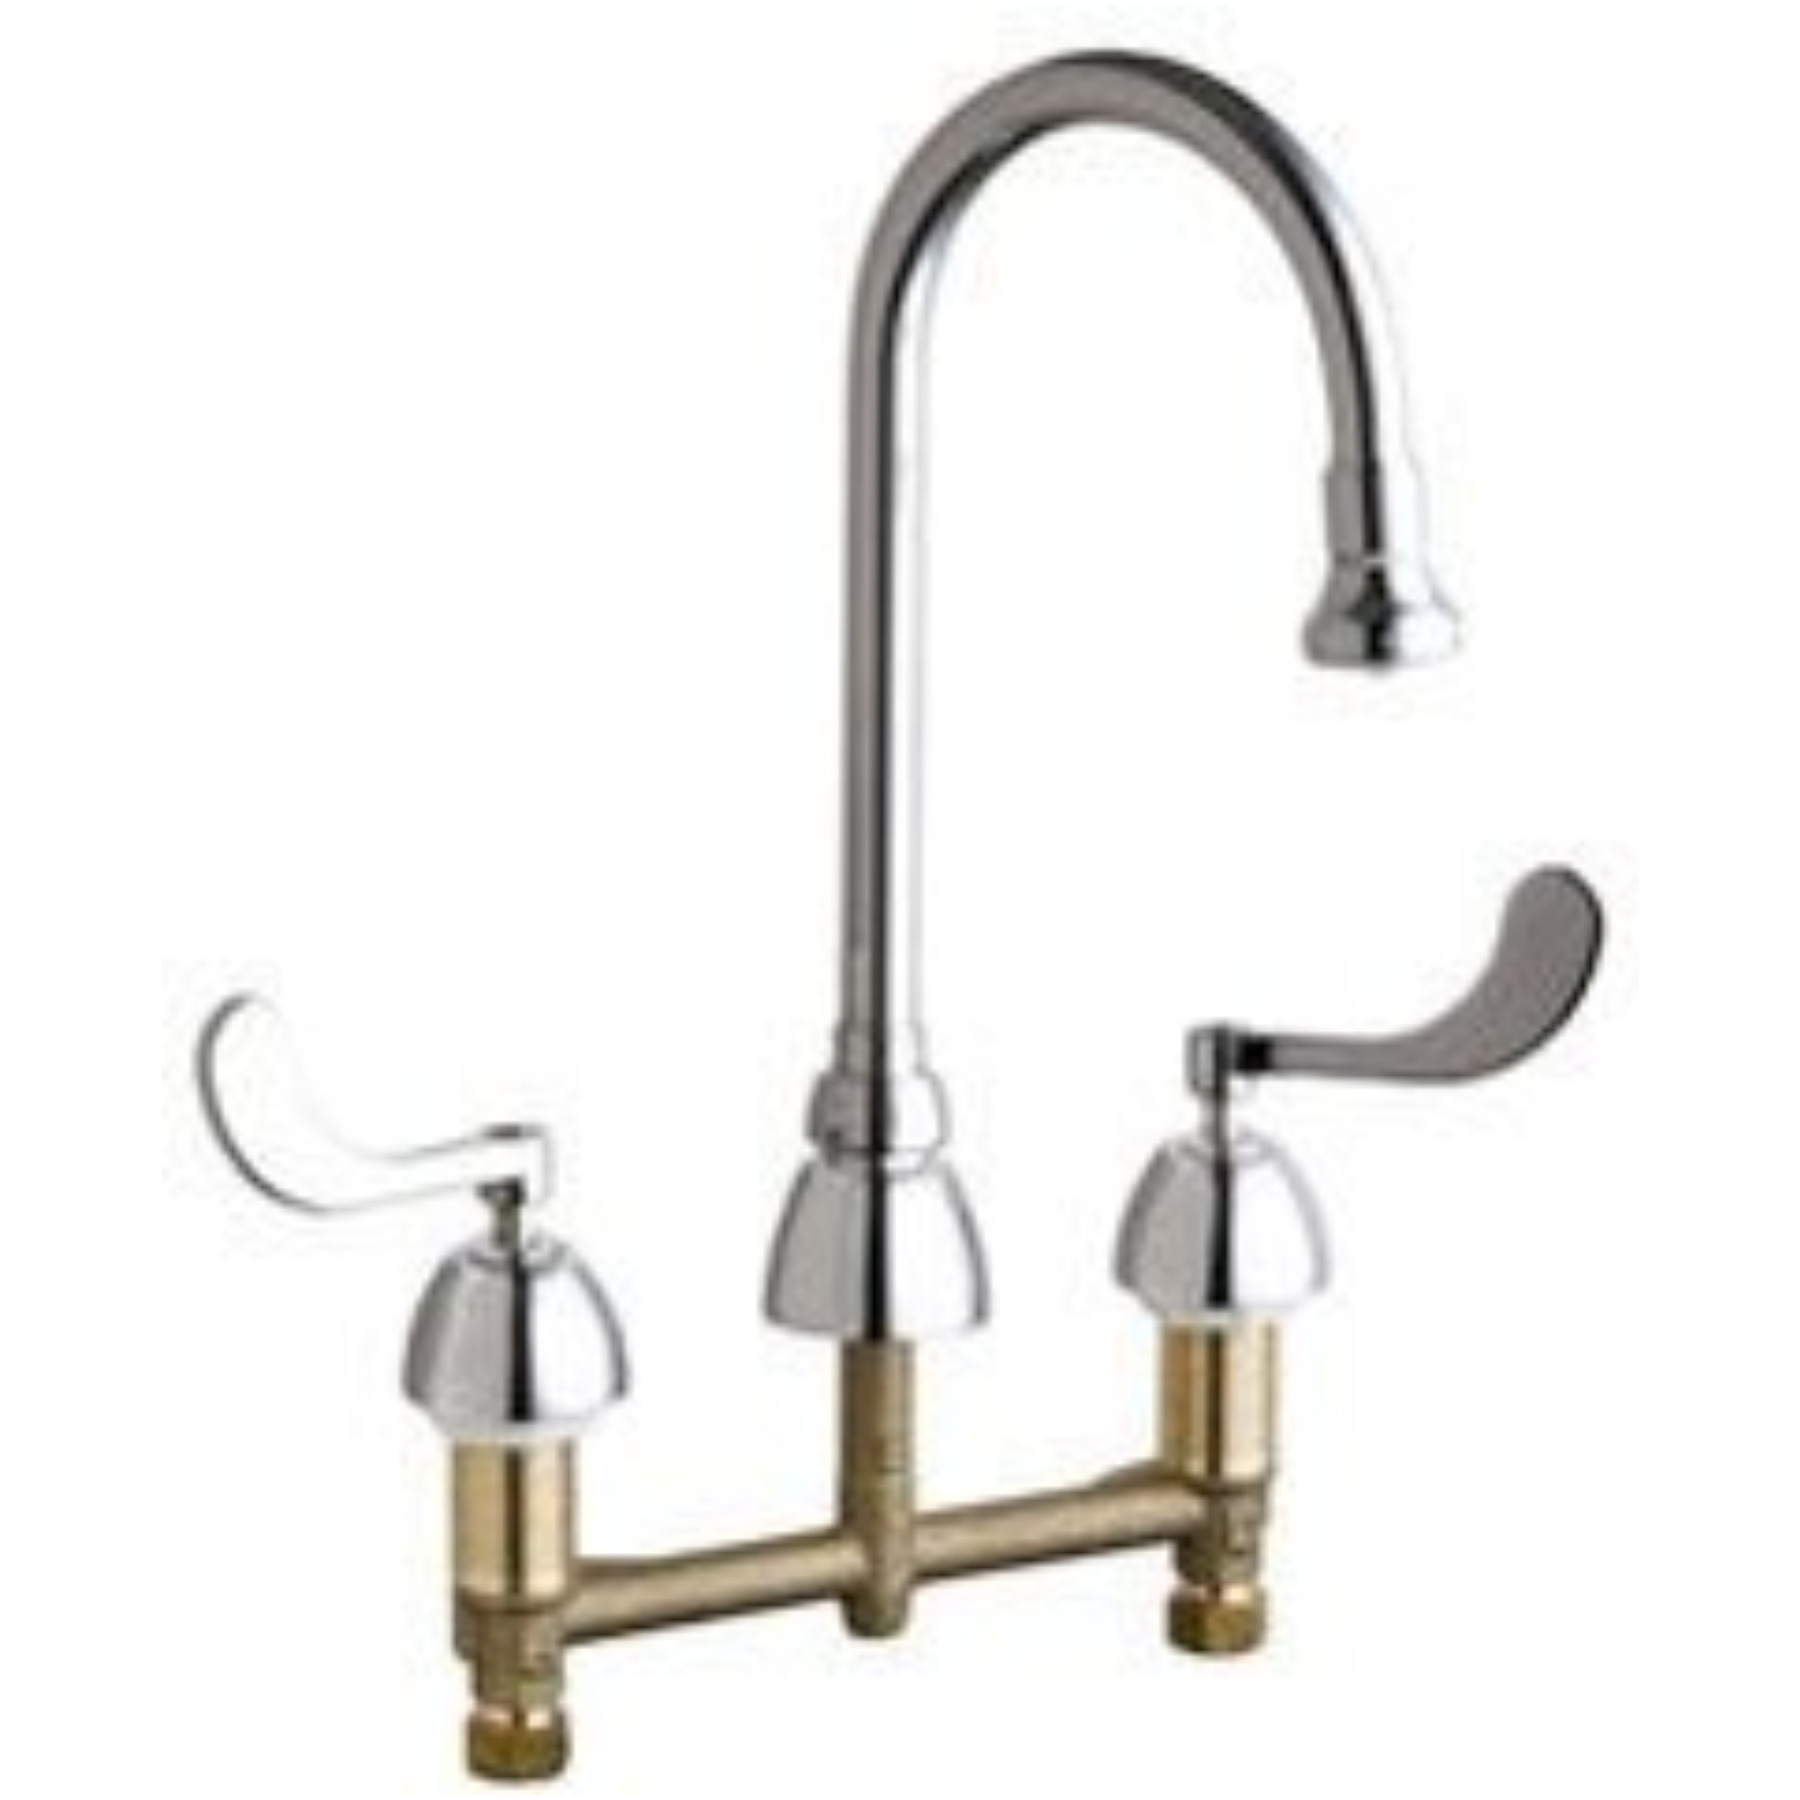 CHICAGO FAUCETS� LEAD-FREE WALL-MOUNTED HOSPITAL SINK FAUCET, 5.25-INCH GOOSENECK SPOUT, WRISTBLADE HANDLES, 2.0 GPM SPRAY